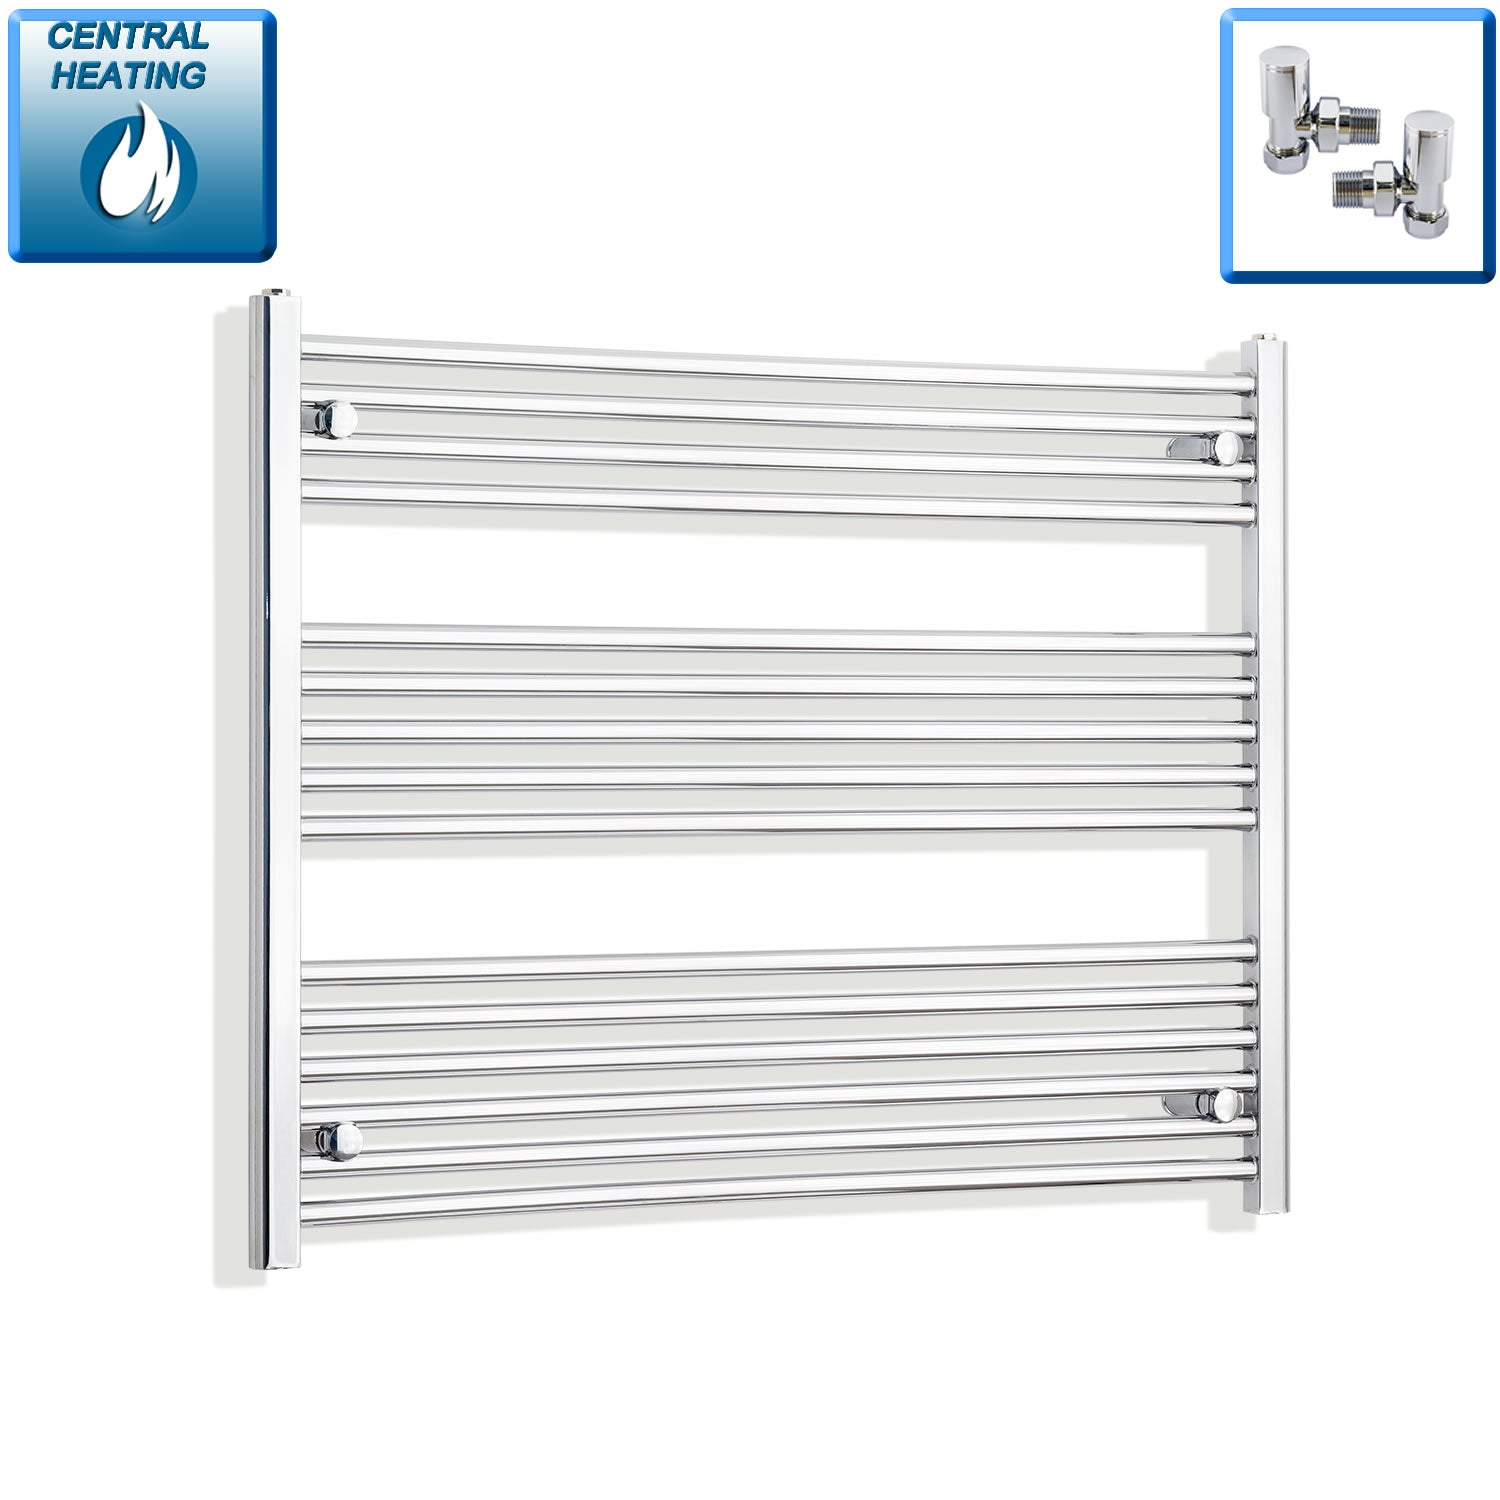 1000mm Wide 800mm High Chrome Towel Rail Radiator With Angled Valve